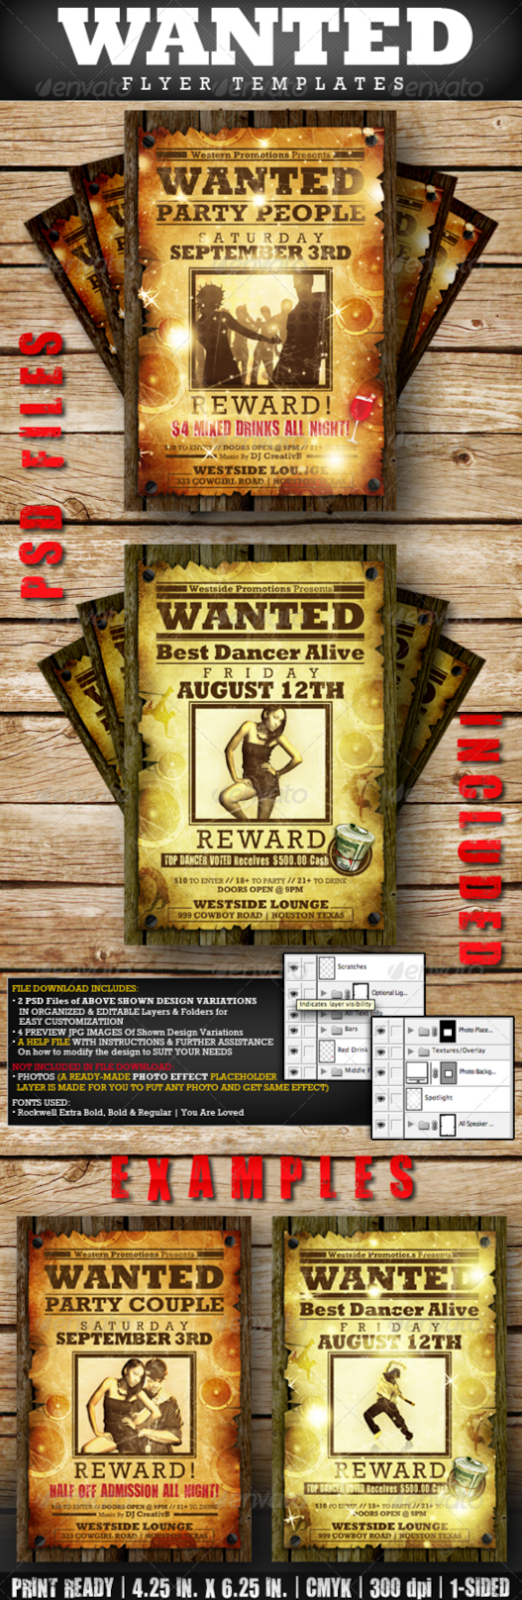 20 Best Wanted Poster Templates PSD Download   Designsmag.org   Web Design  And Development  Free Wanted Poster Template Download